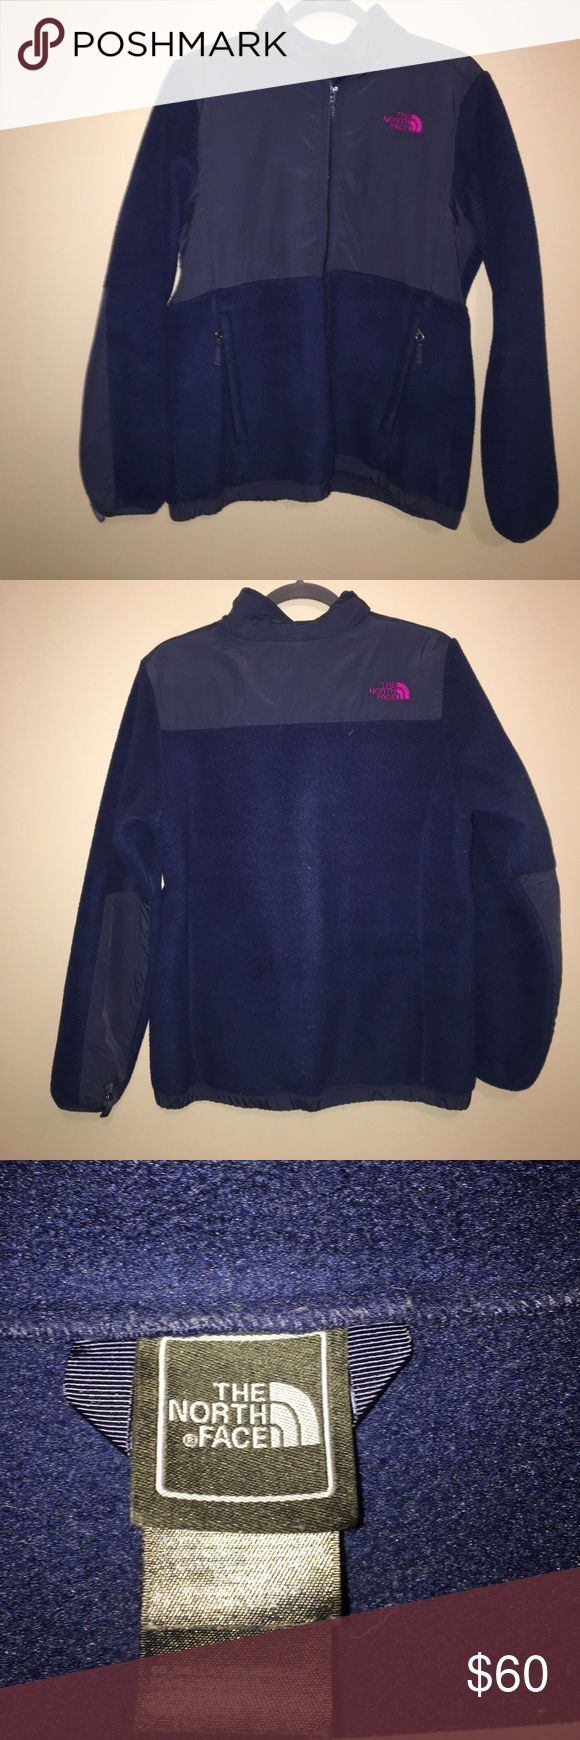 Girls XL (18) The North Face Fleece Zip up Jacket Navy blue North Face Fleece Zip up The North Face Jackets & Coats